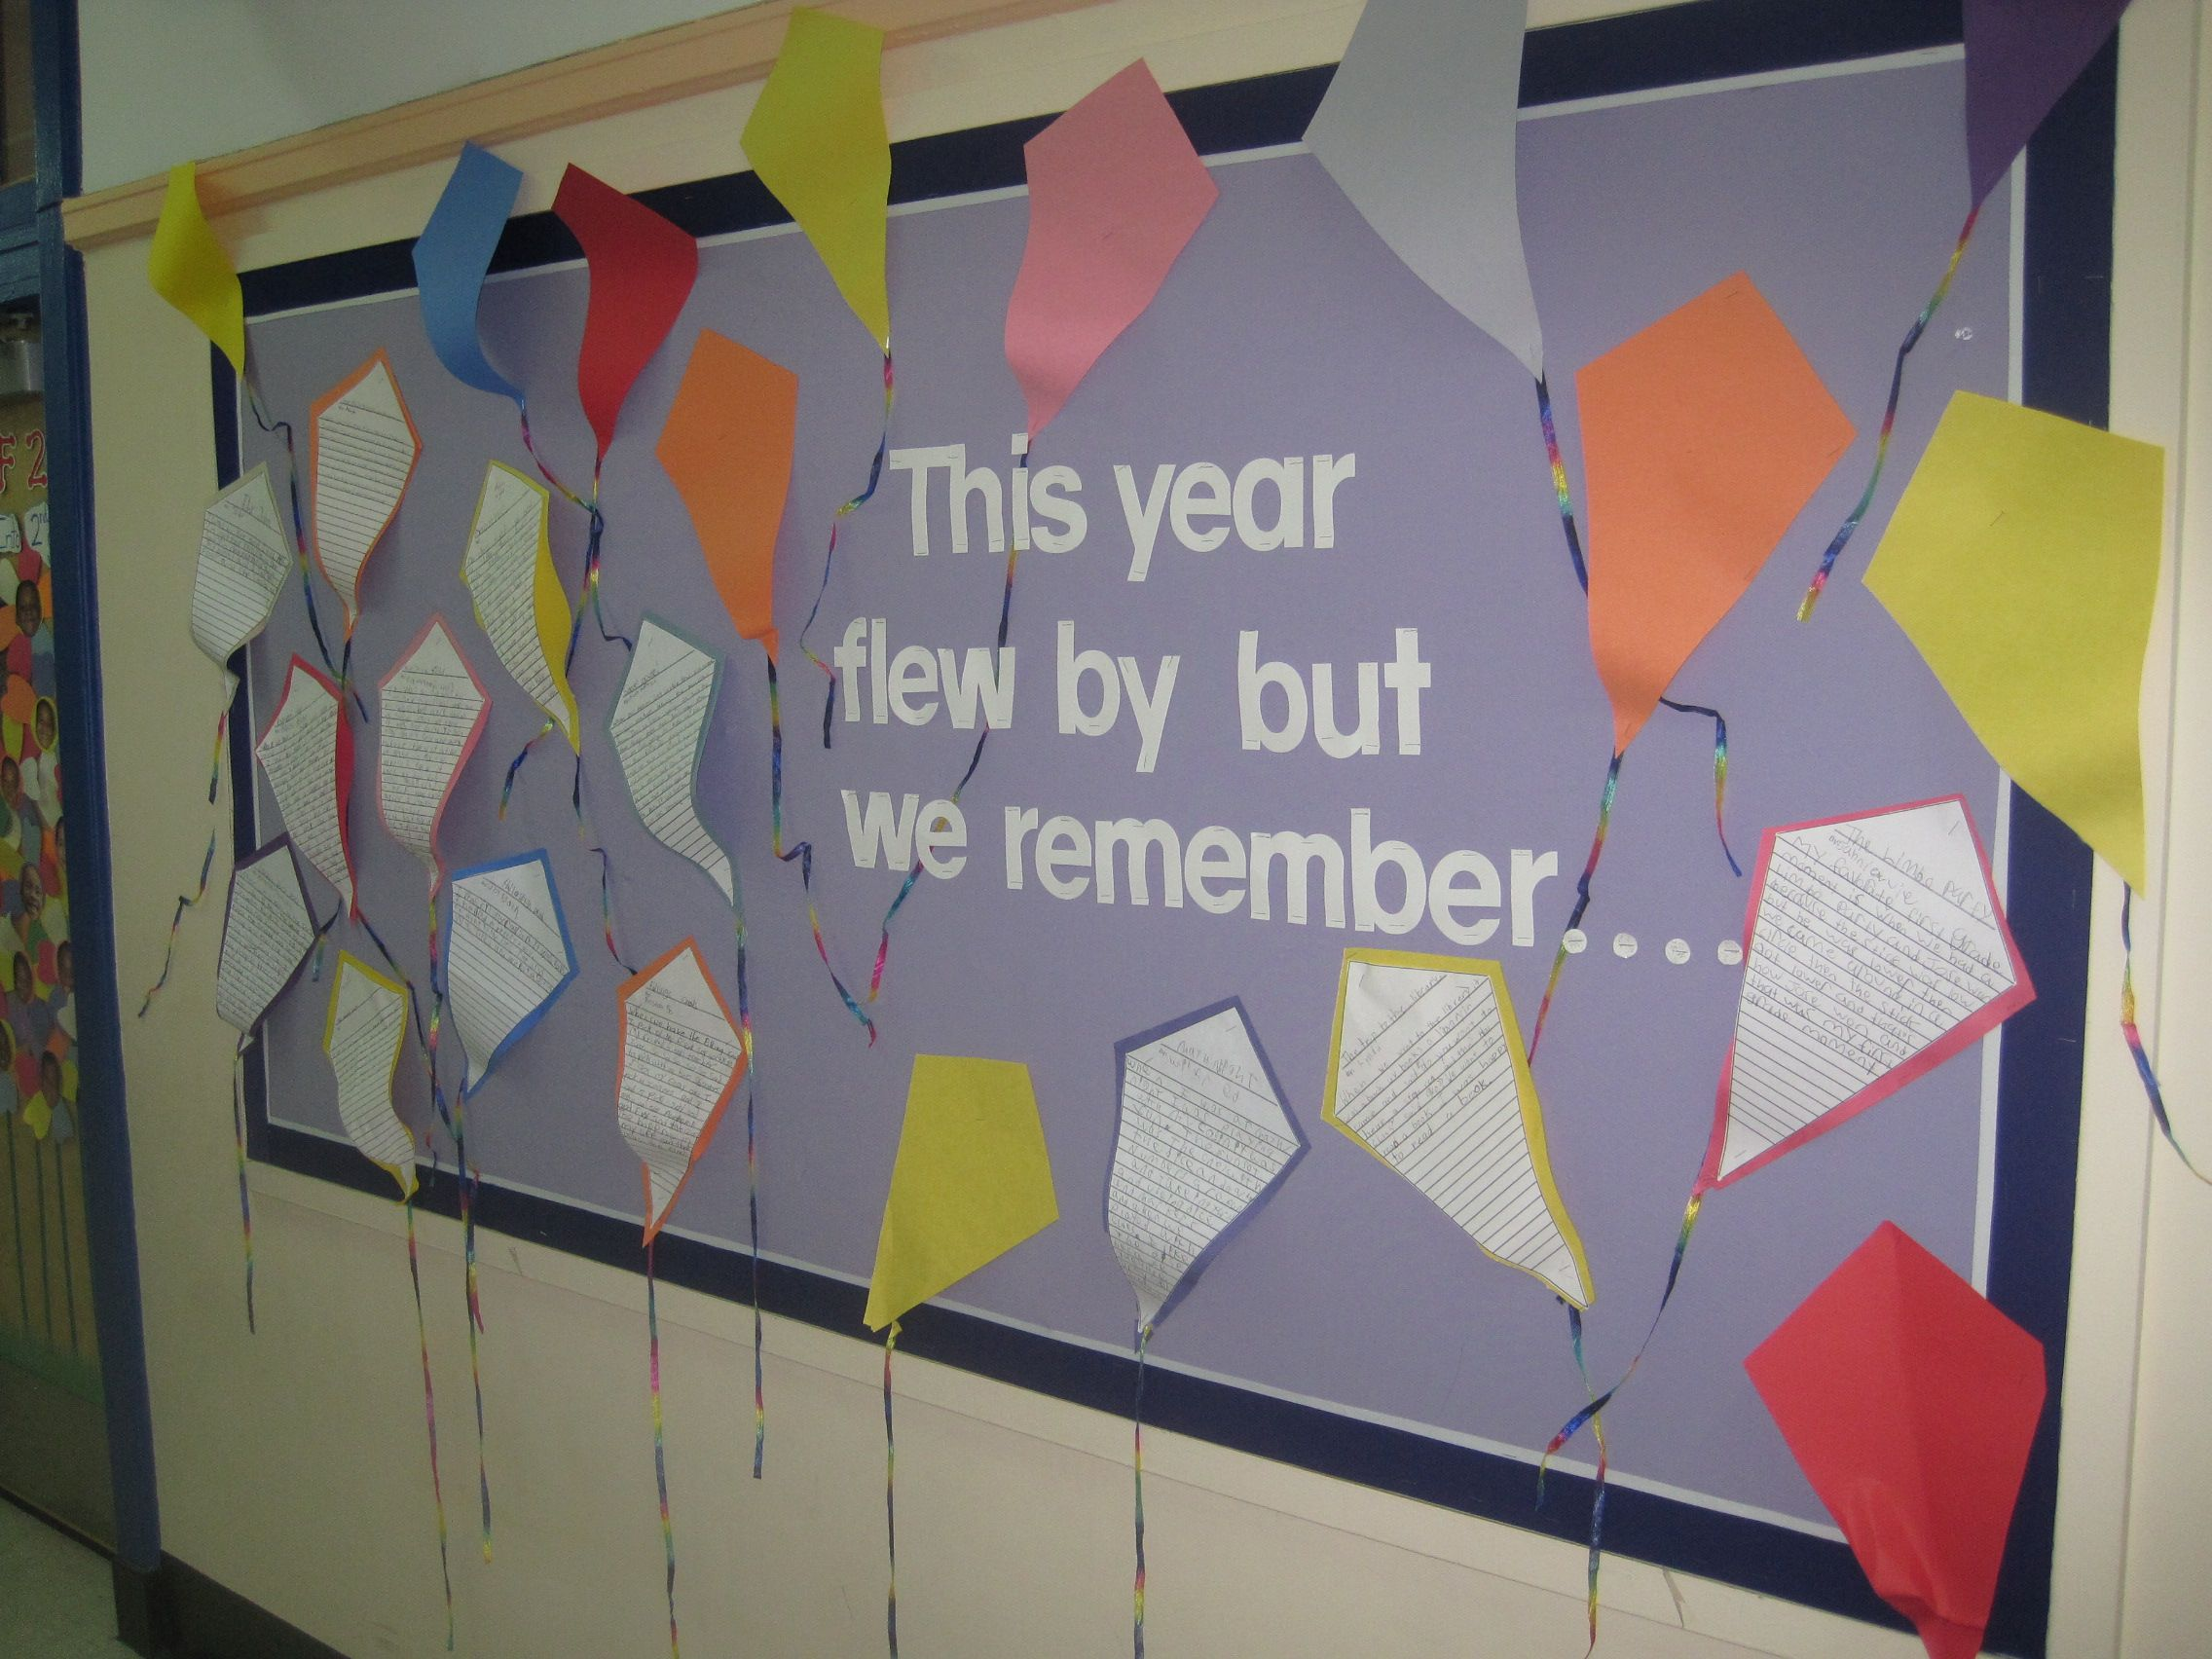 Scrapbook ideas writing - And Using Kite Writing Templates Is A Great Idea For End Of Year Writing Assignment And Summer Bulletin Board Display